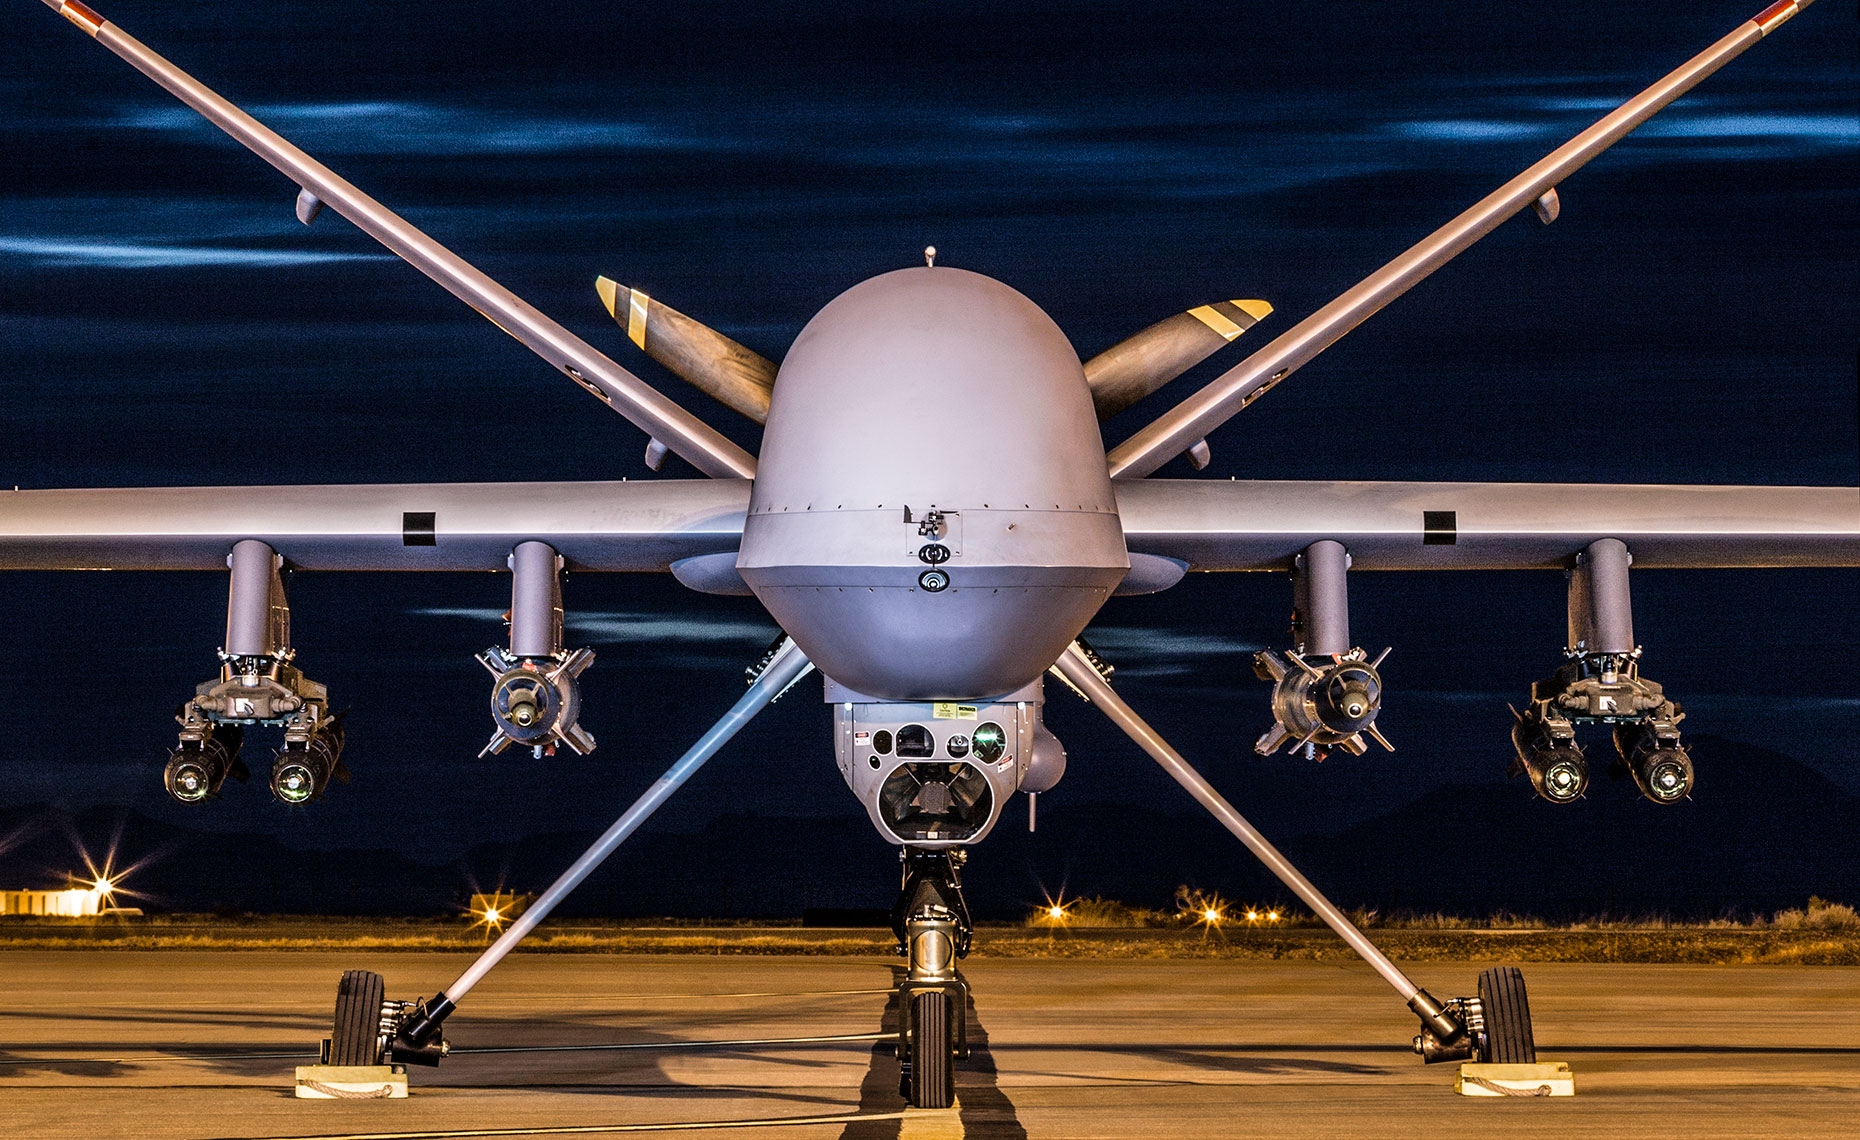 General Atomics Predator